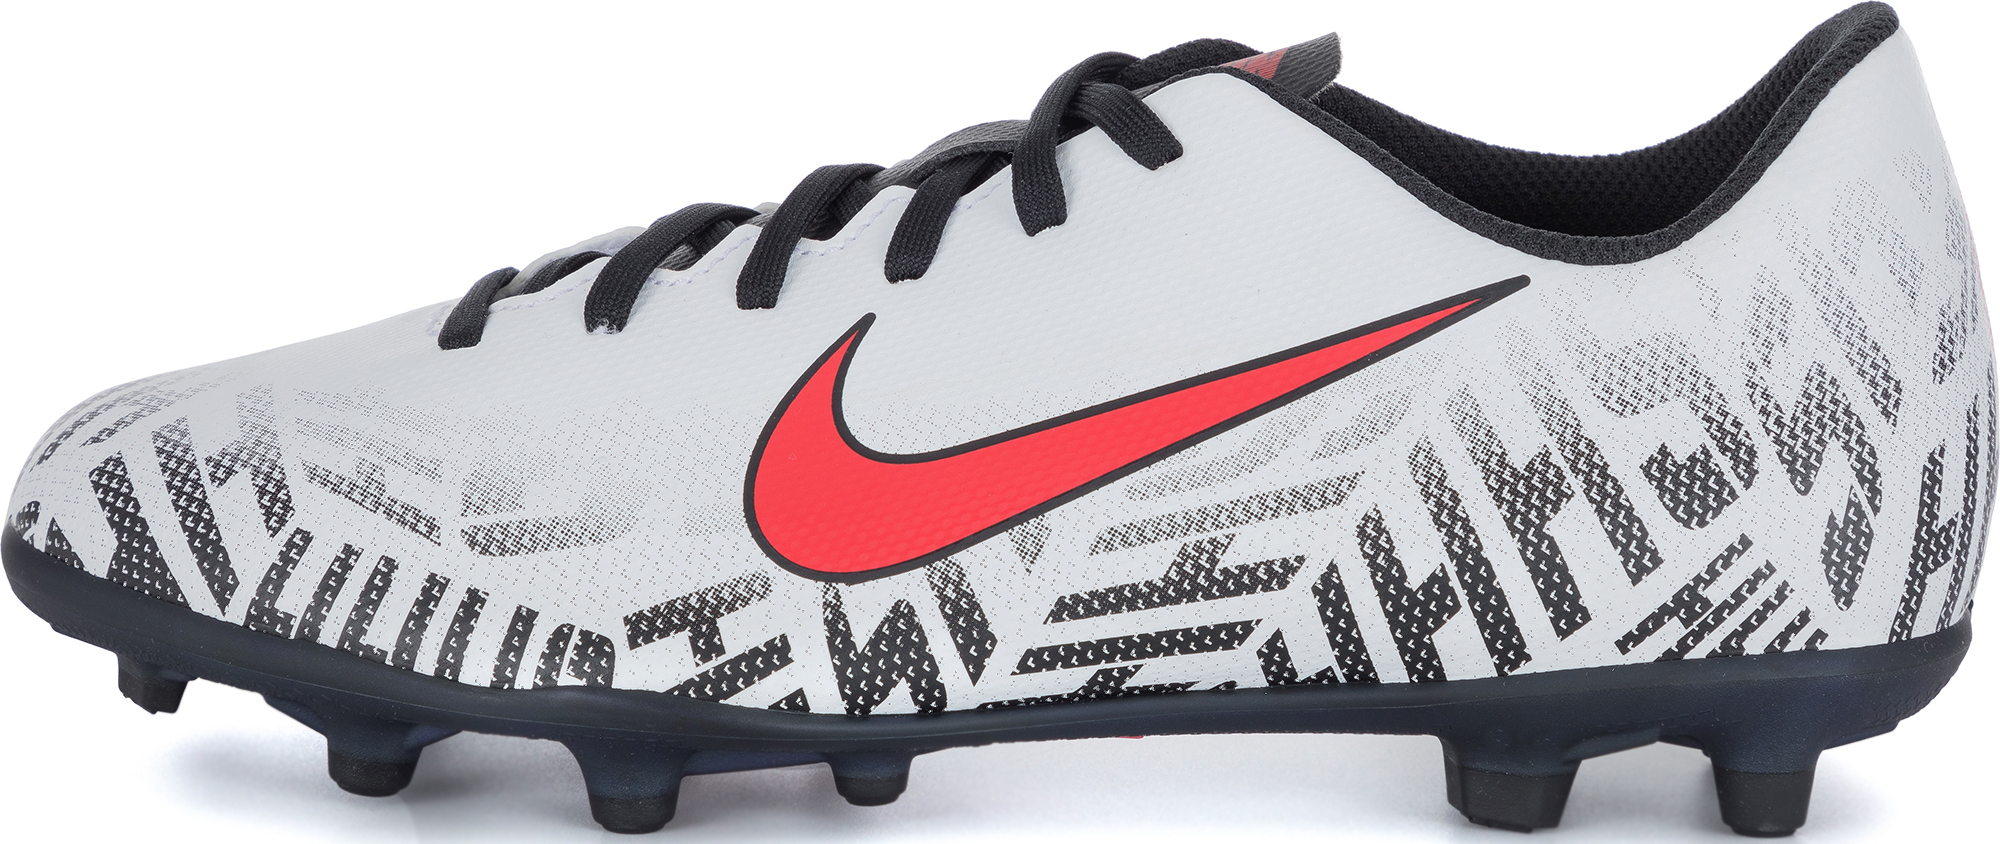 Nike Бутсы для мальчиков Nike Vapor 12 Club GS Njr FG/MG, размер 37,5 цена 2017